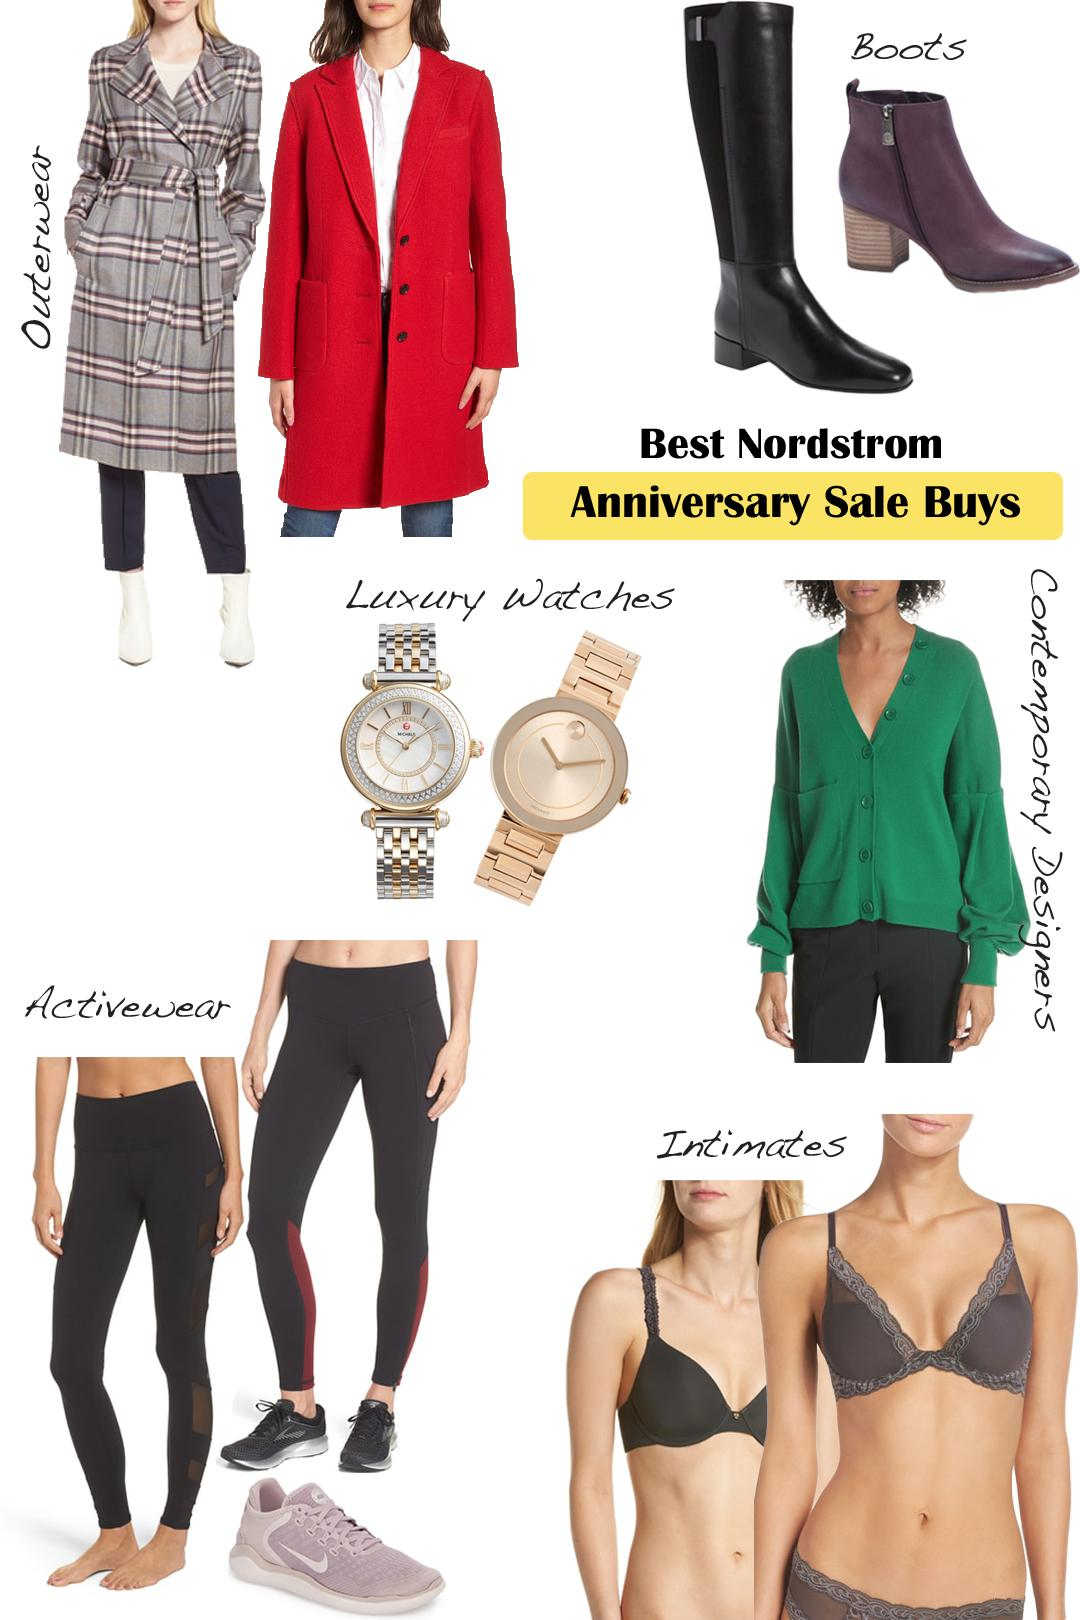 best nordstrom anniversary sale buys